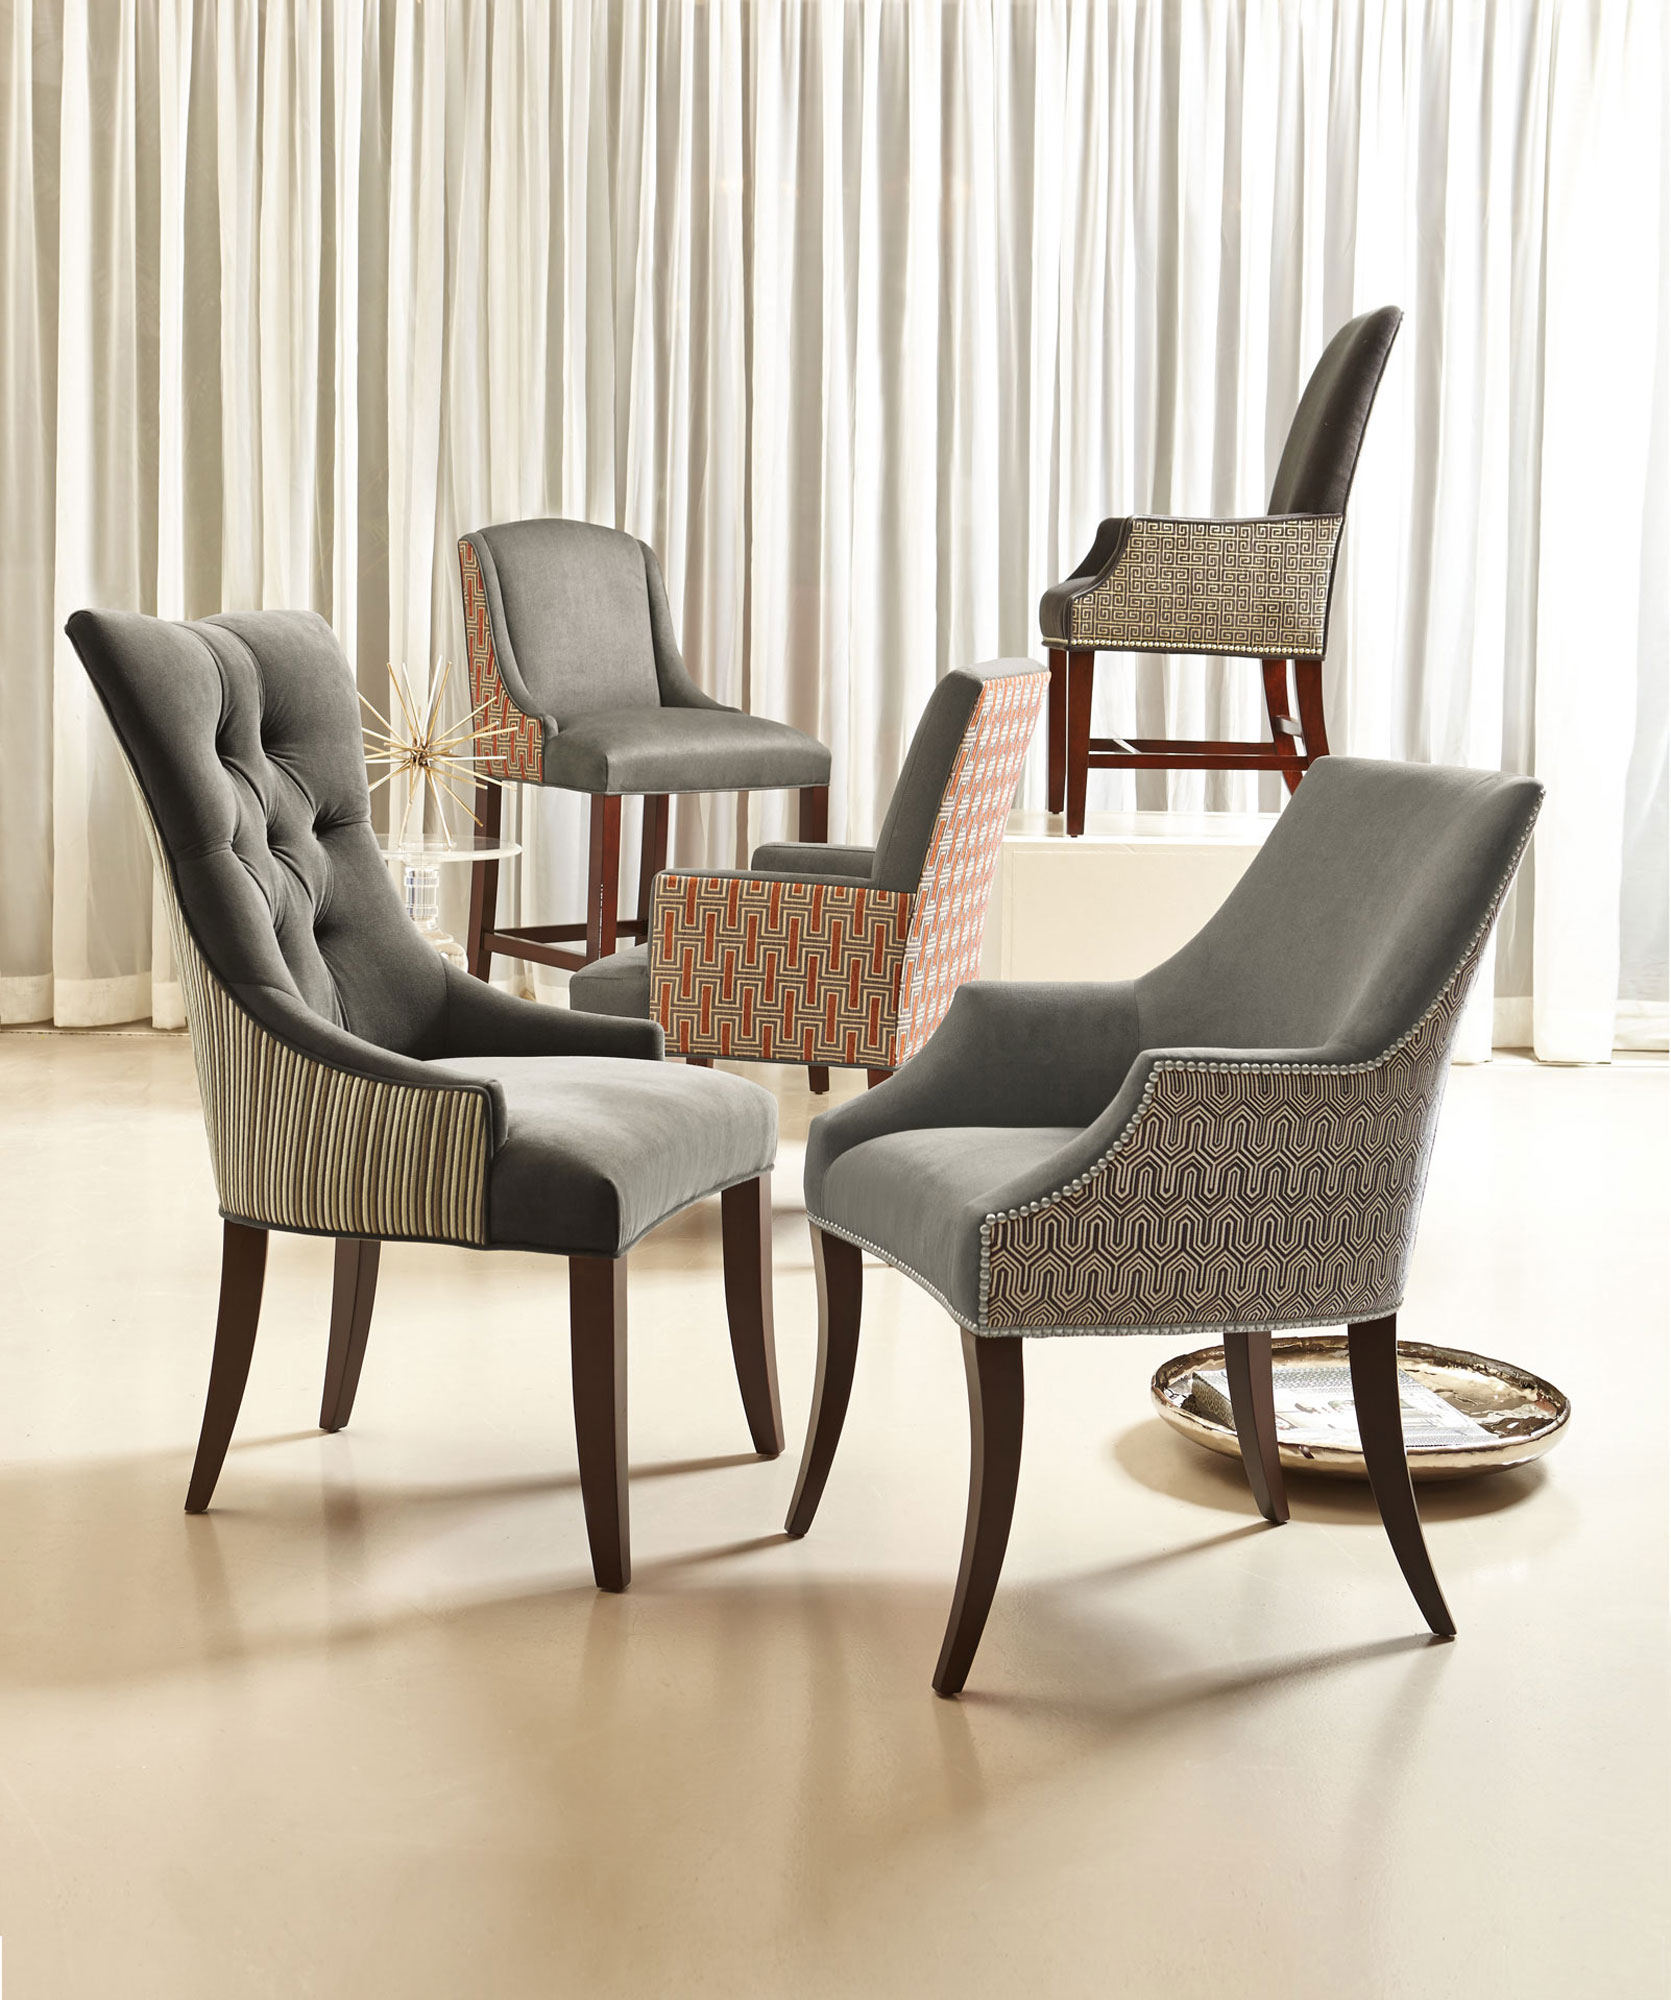 nailhead dining room chairs wheelchair puns astor deco hadden keeley slope | bernhardt